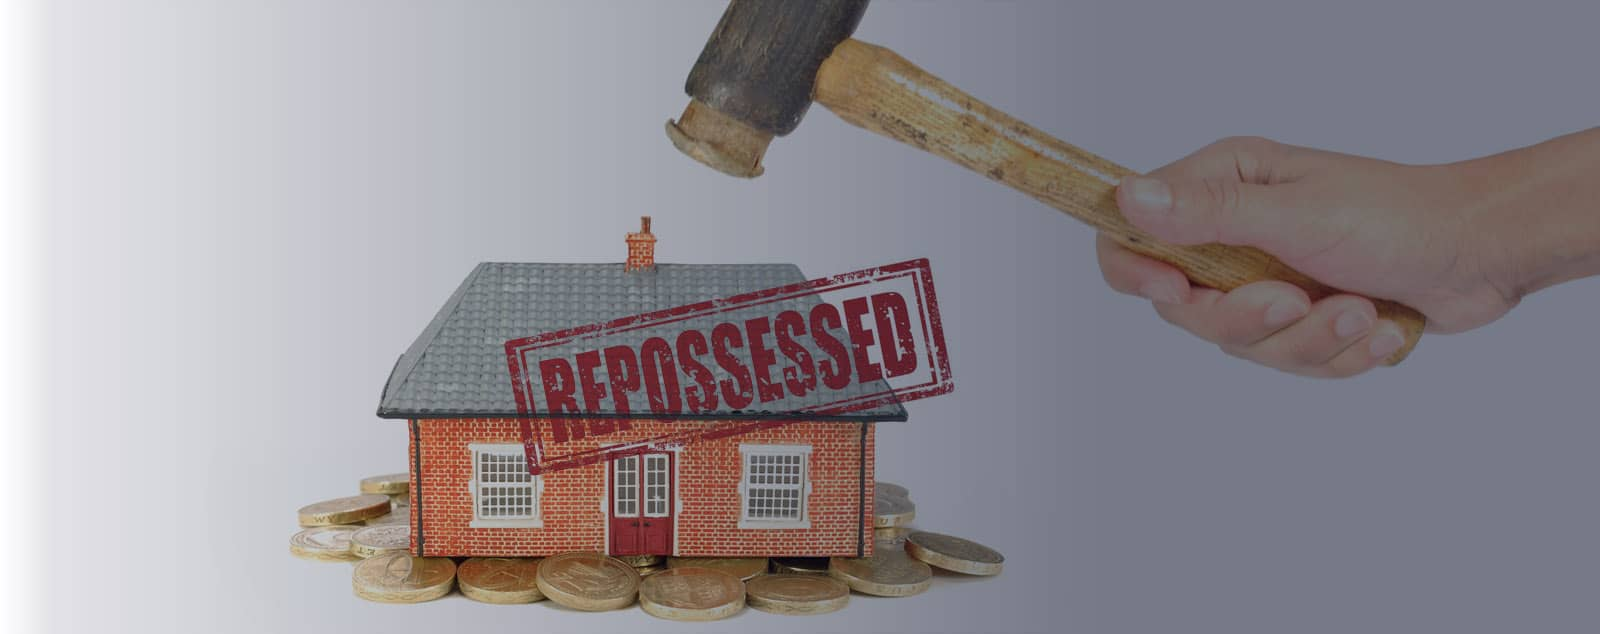 House Repossession - How To Stop It Immediately